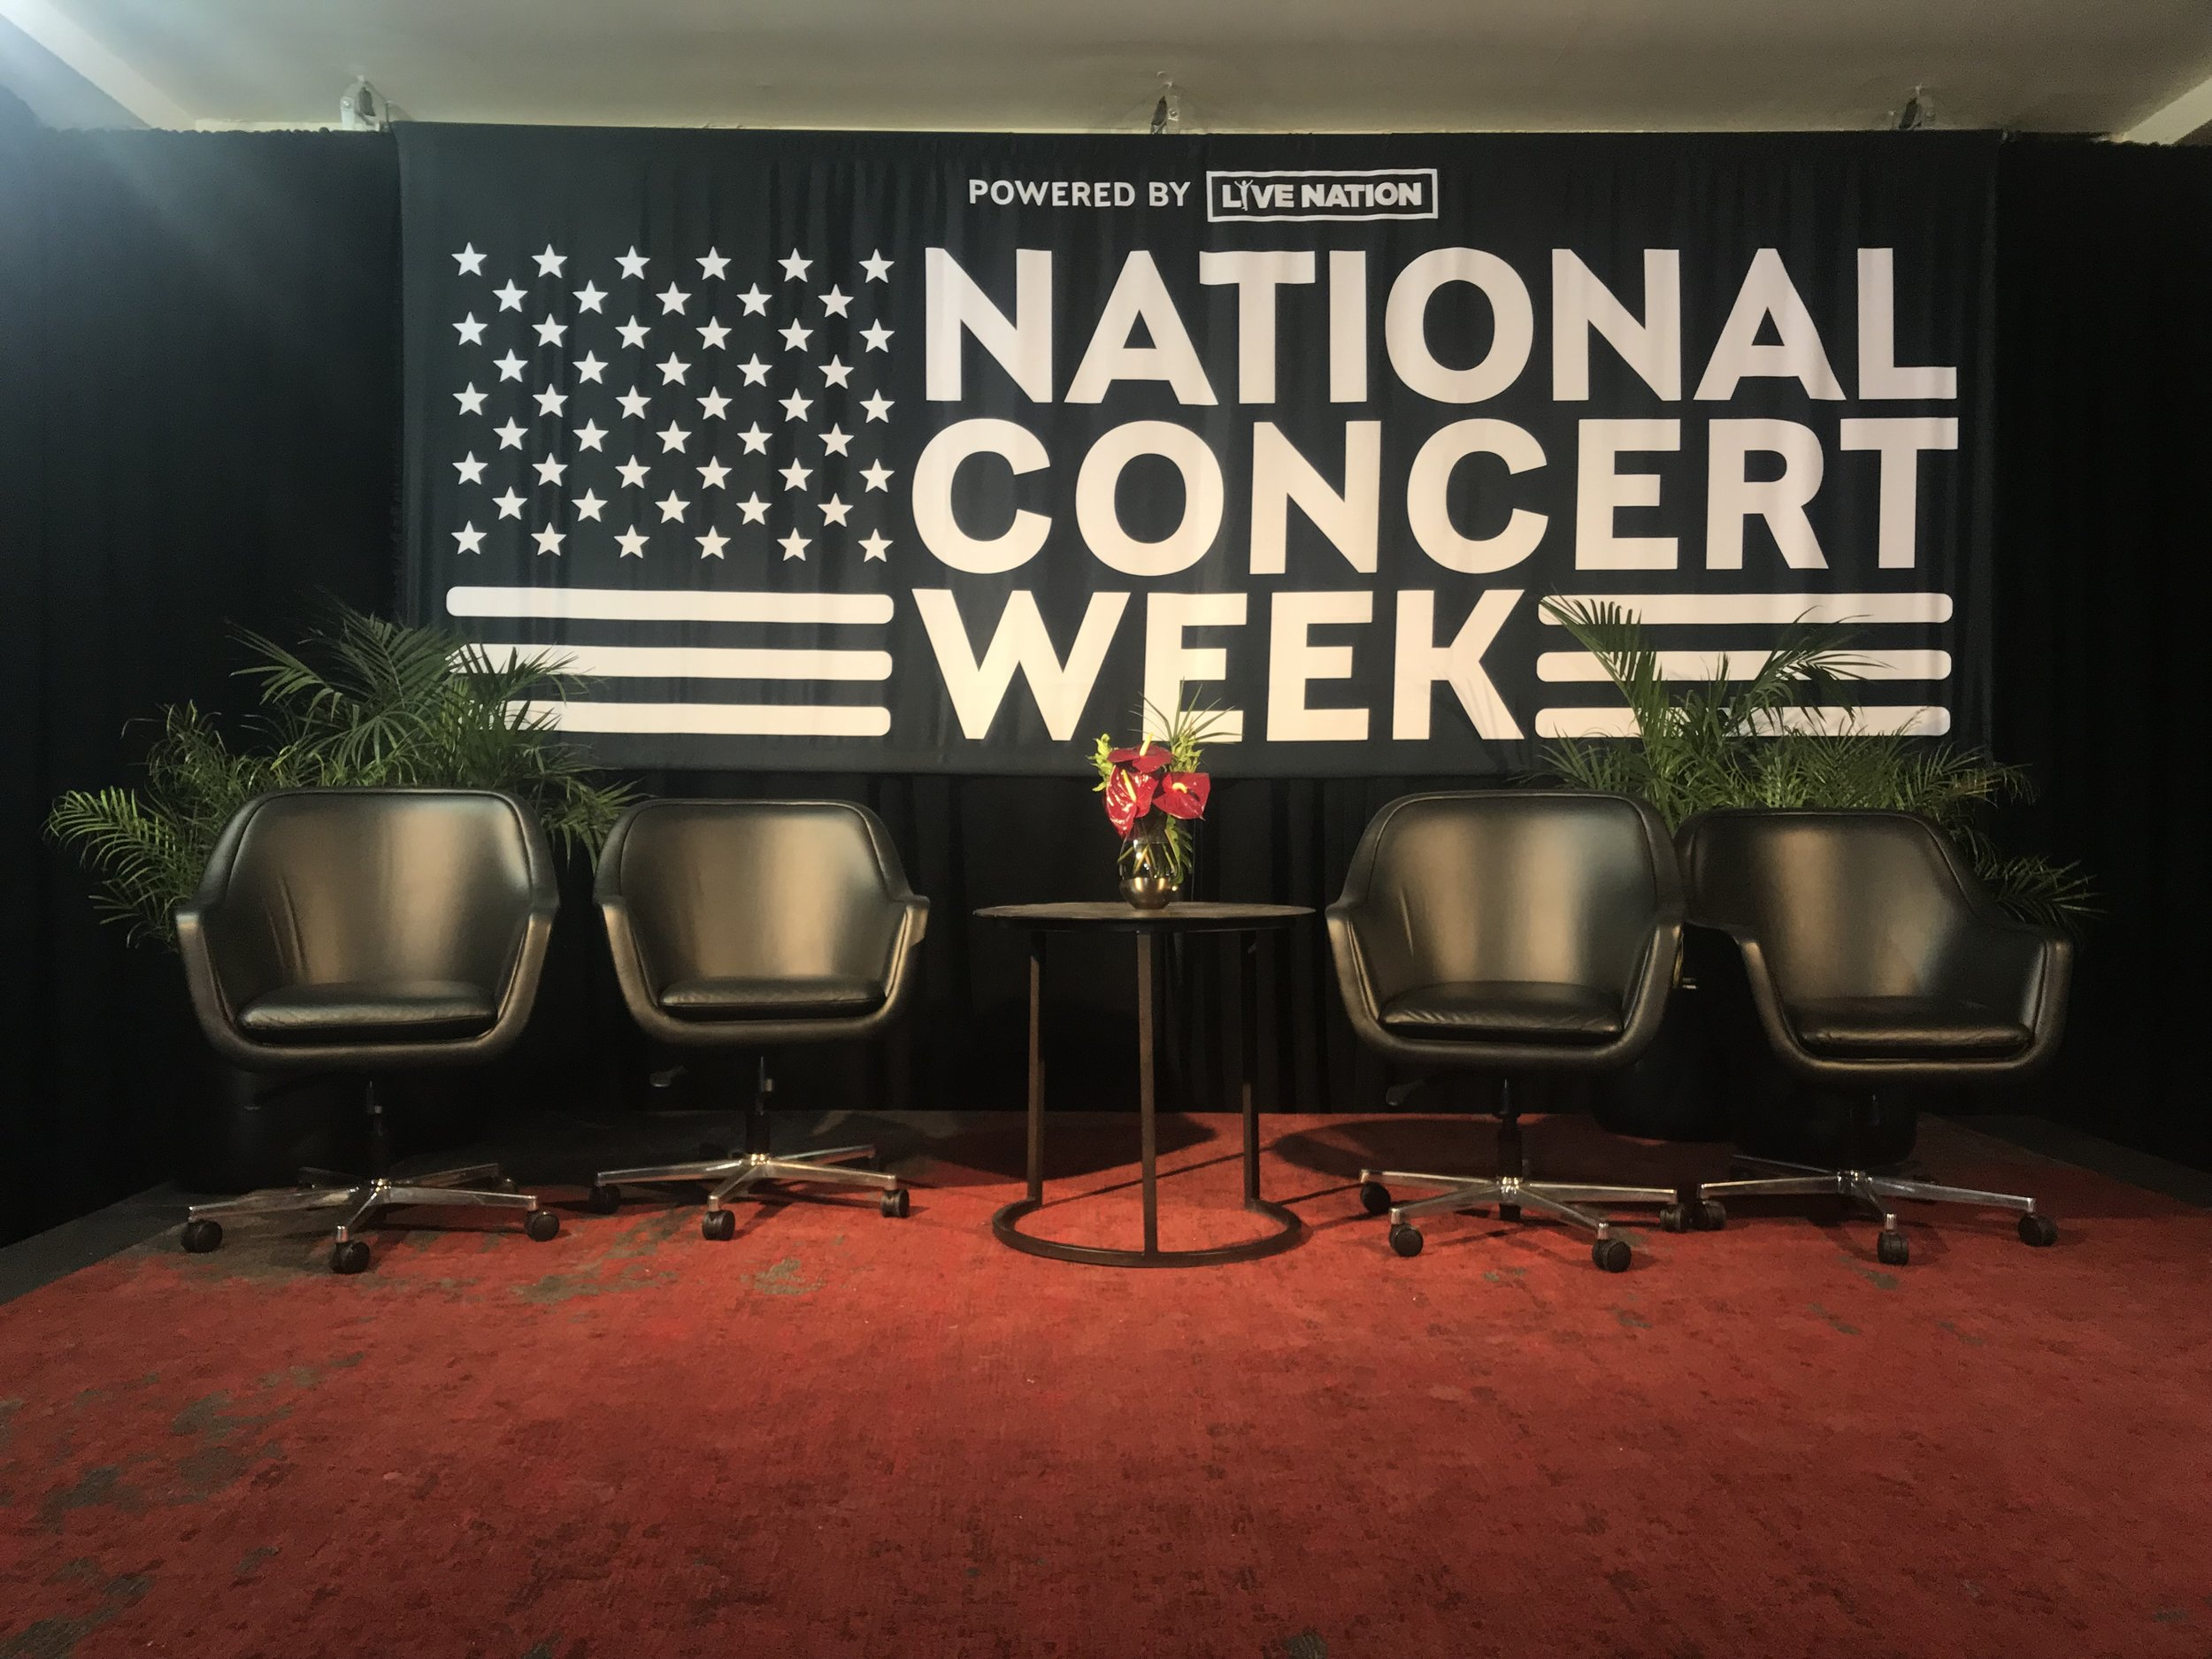 LIVE NATION - NATIONAL CONCERT WEEK - STAGE DESIGN